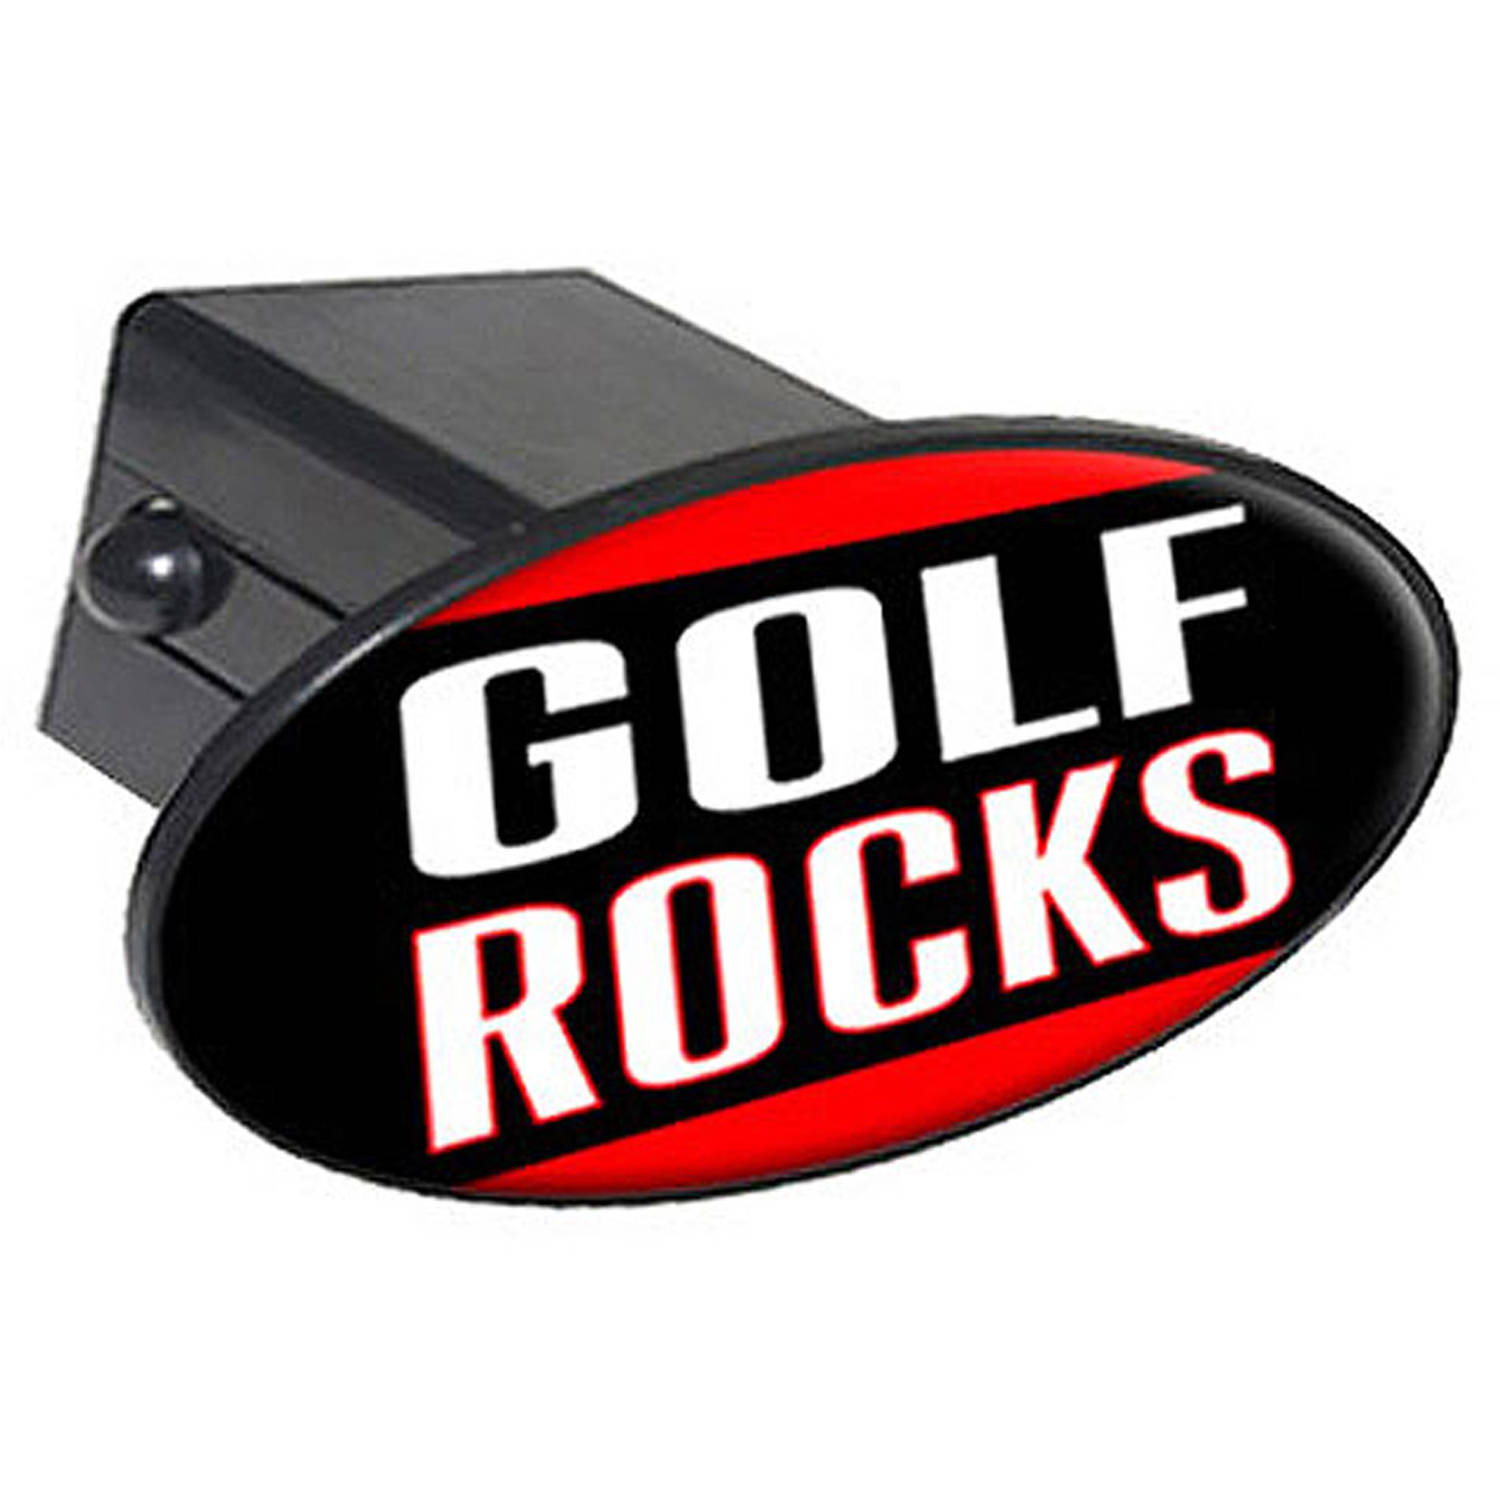 """Golf Rocks 2"""" Oval Tow Trailer Hitch Cover Plug Insert"""